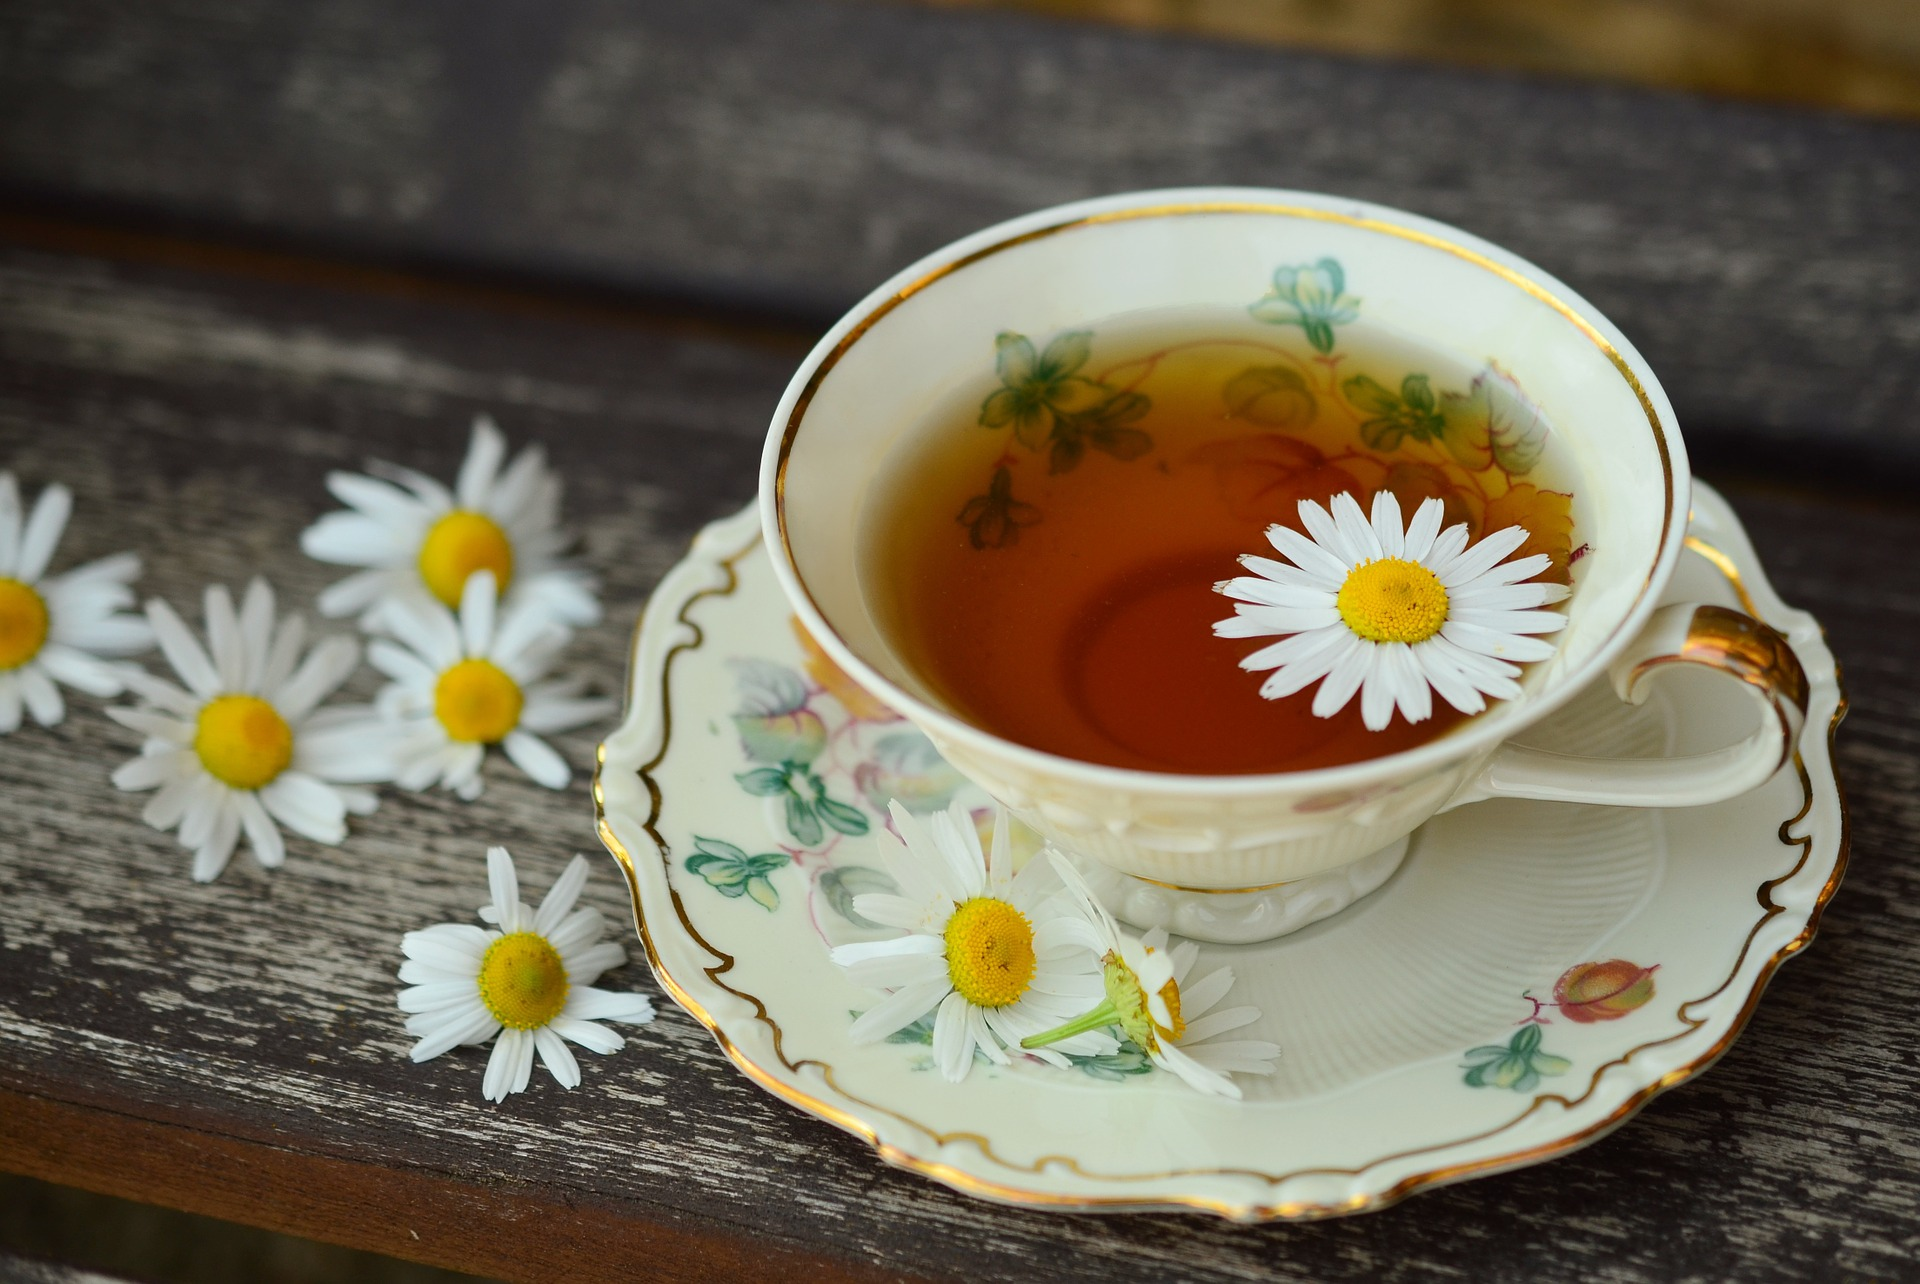 Detox teas for weight loss